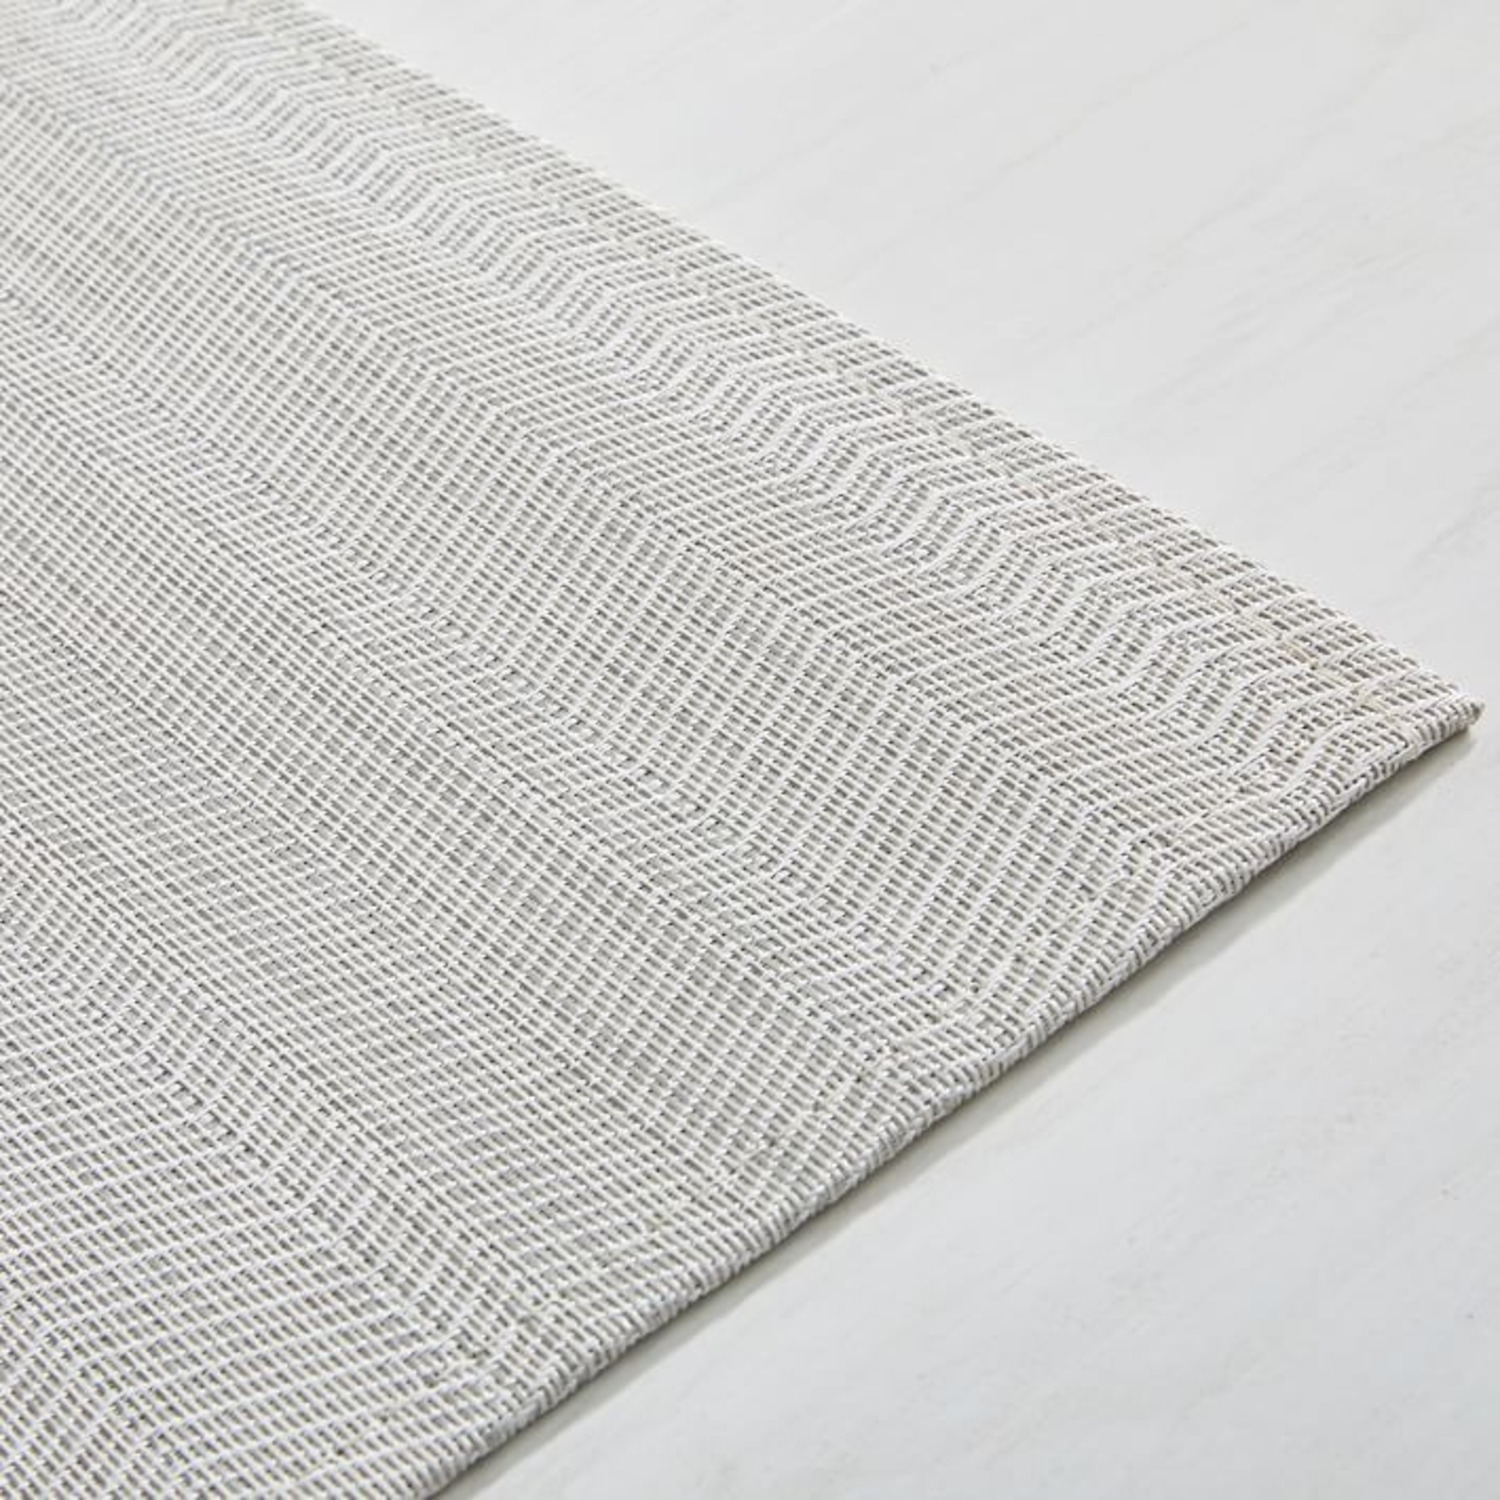 West Elm Chilewich Wave Woven Floormat - image-3